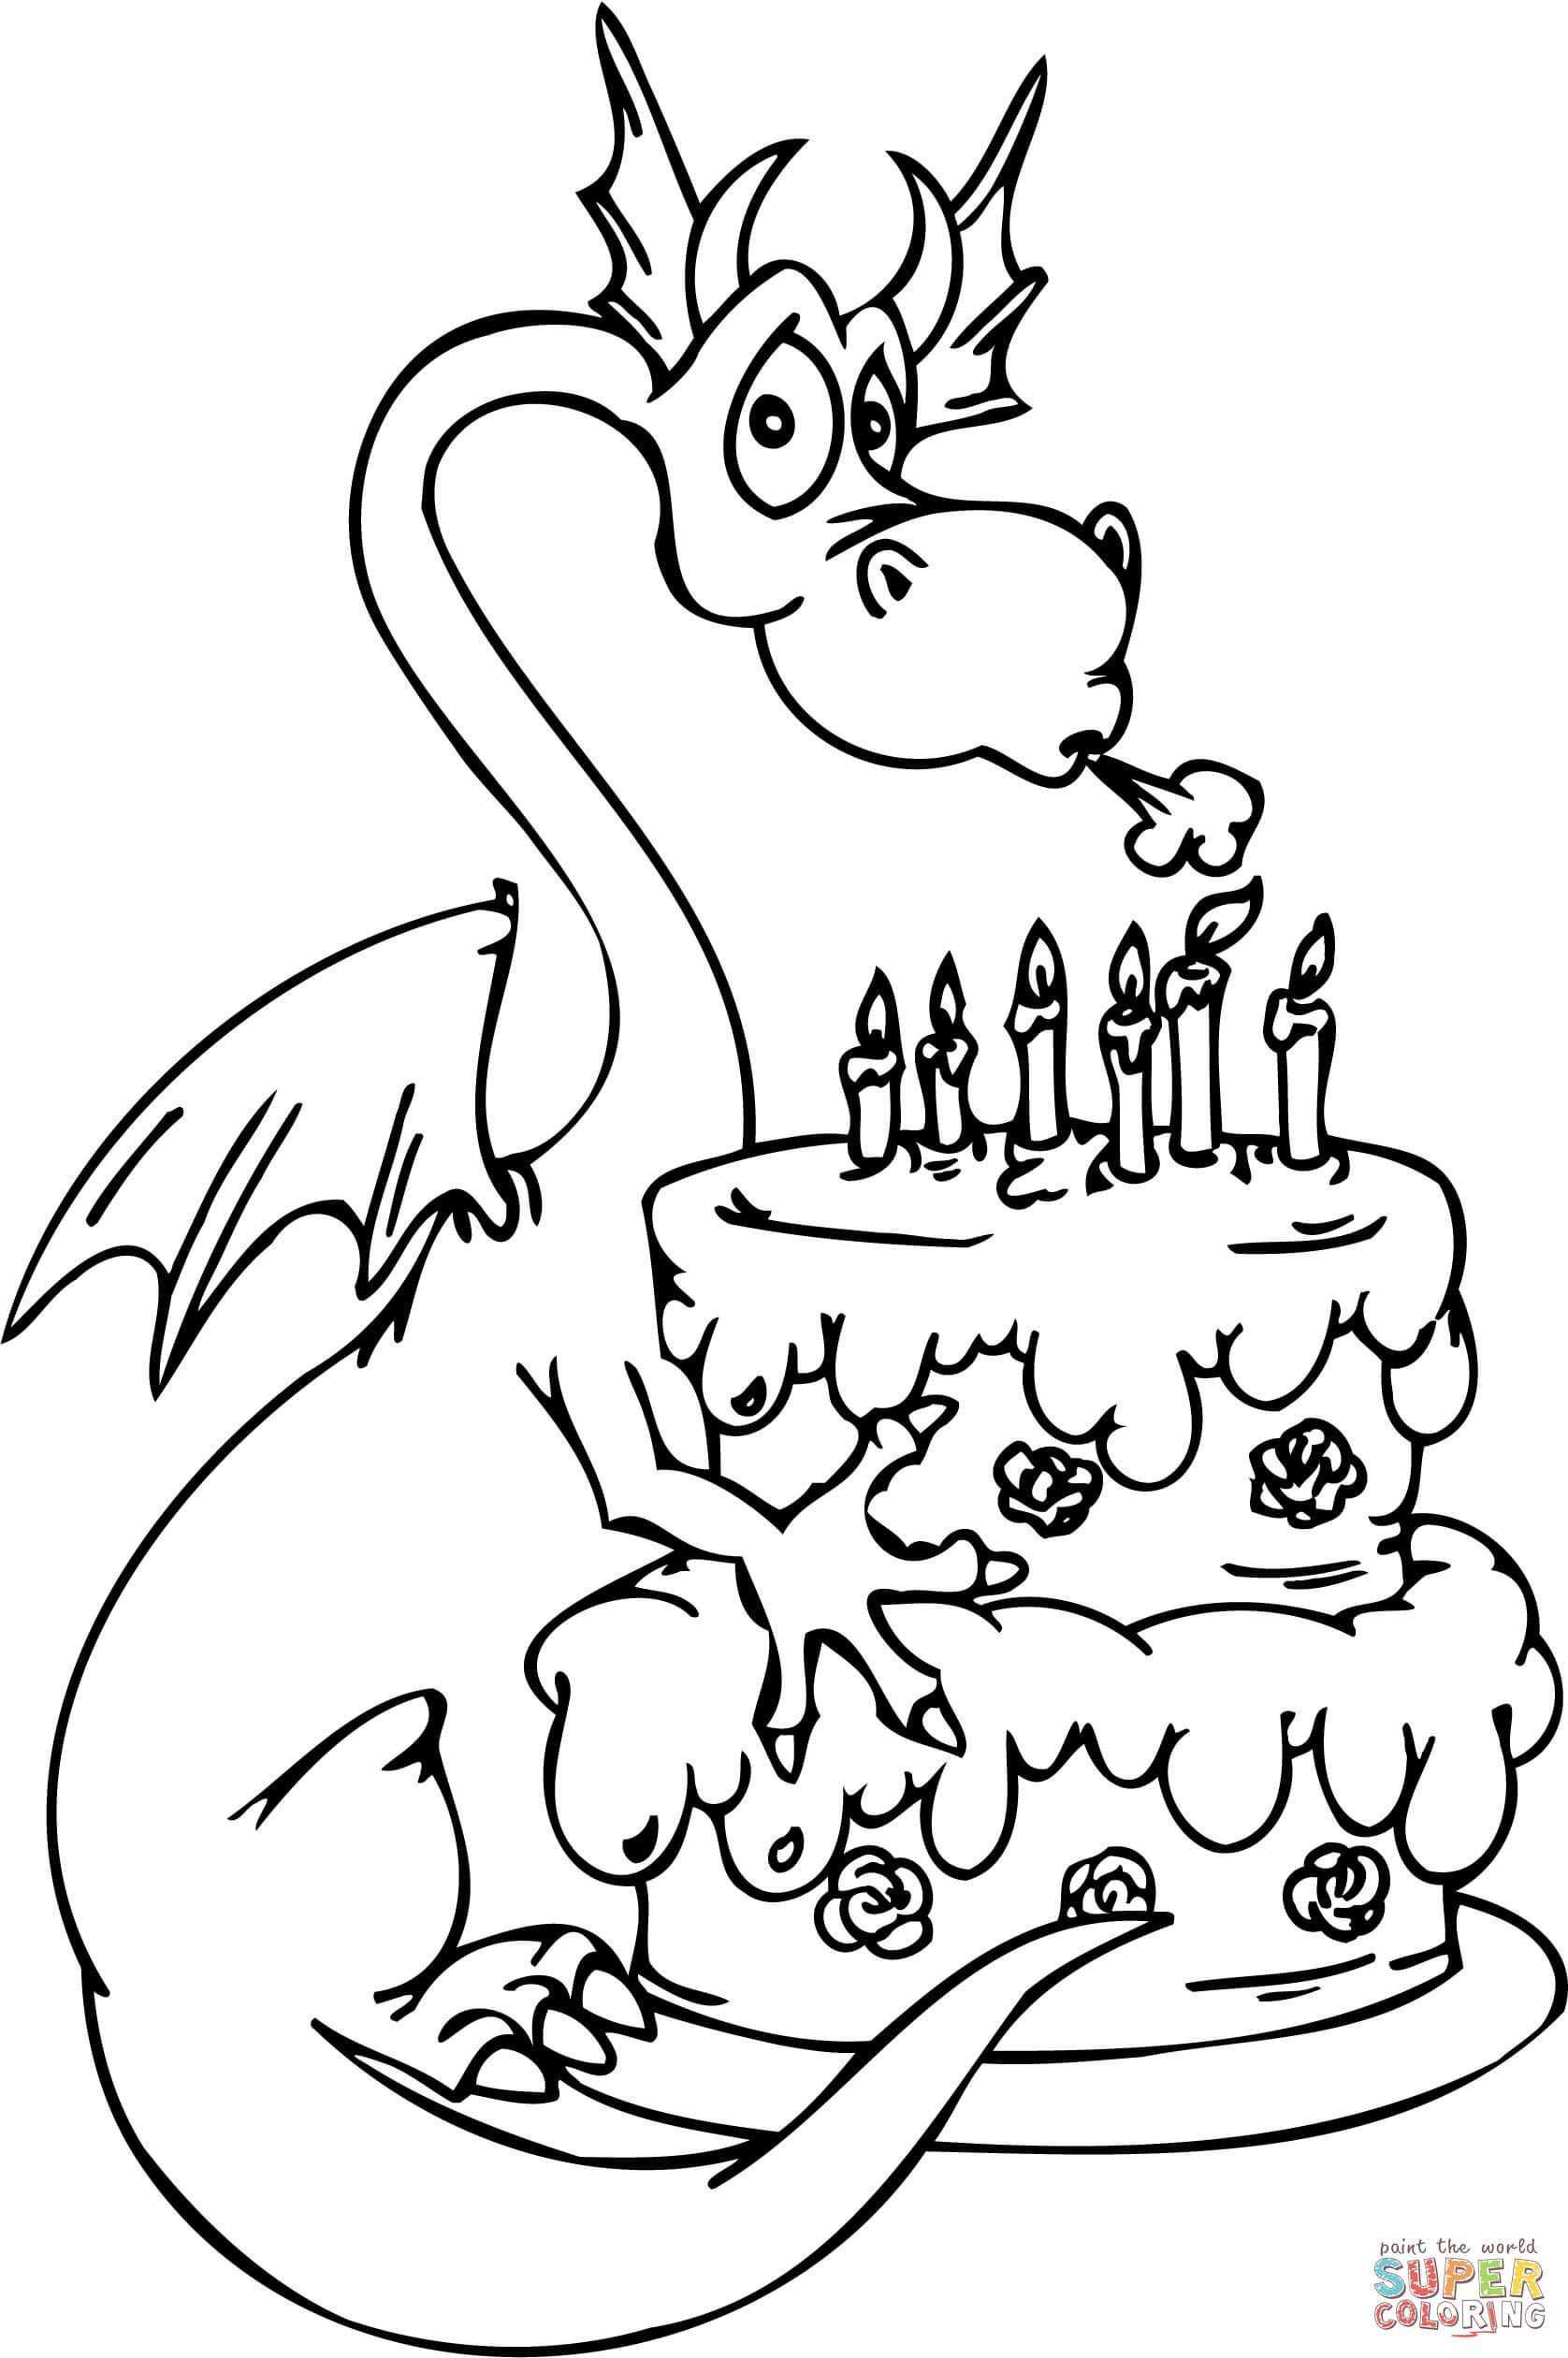 printable birthday cake coloring page 10 images of birthday cake coloring pages printable birthday cake printable coloring page